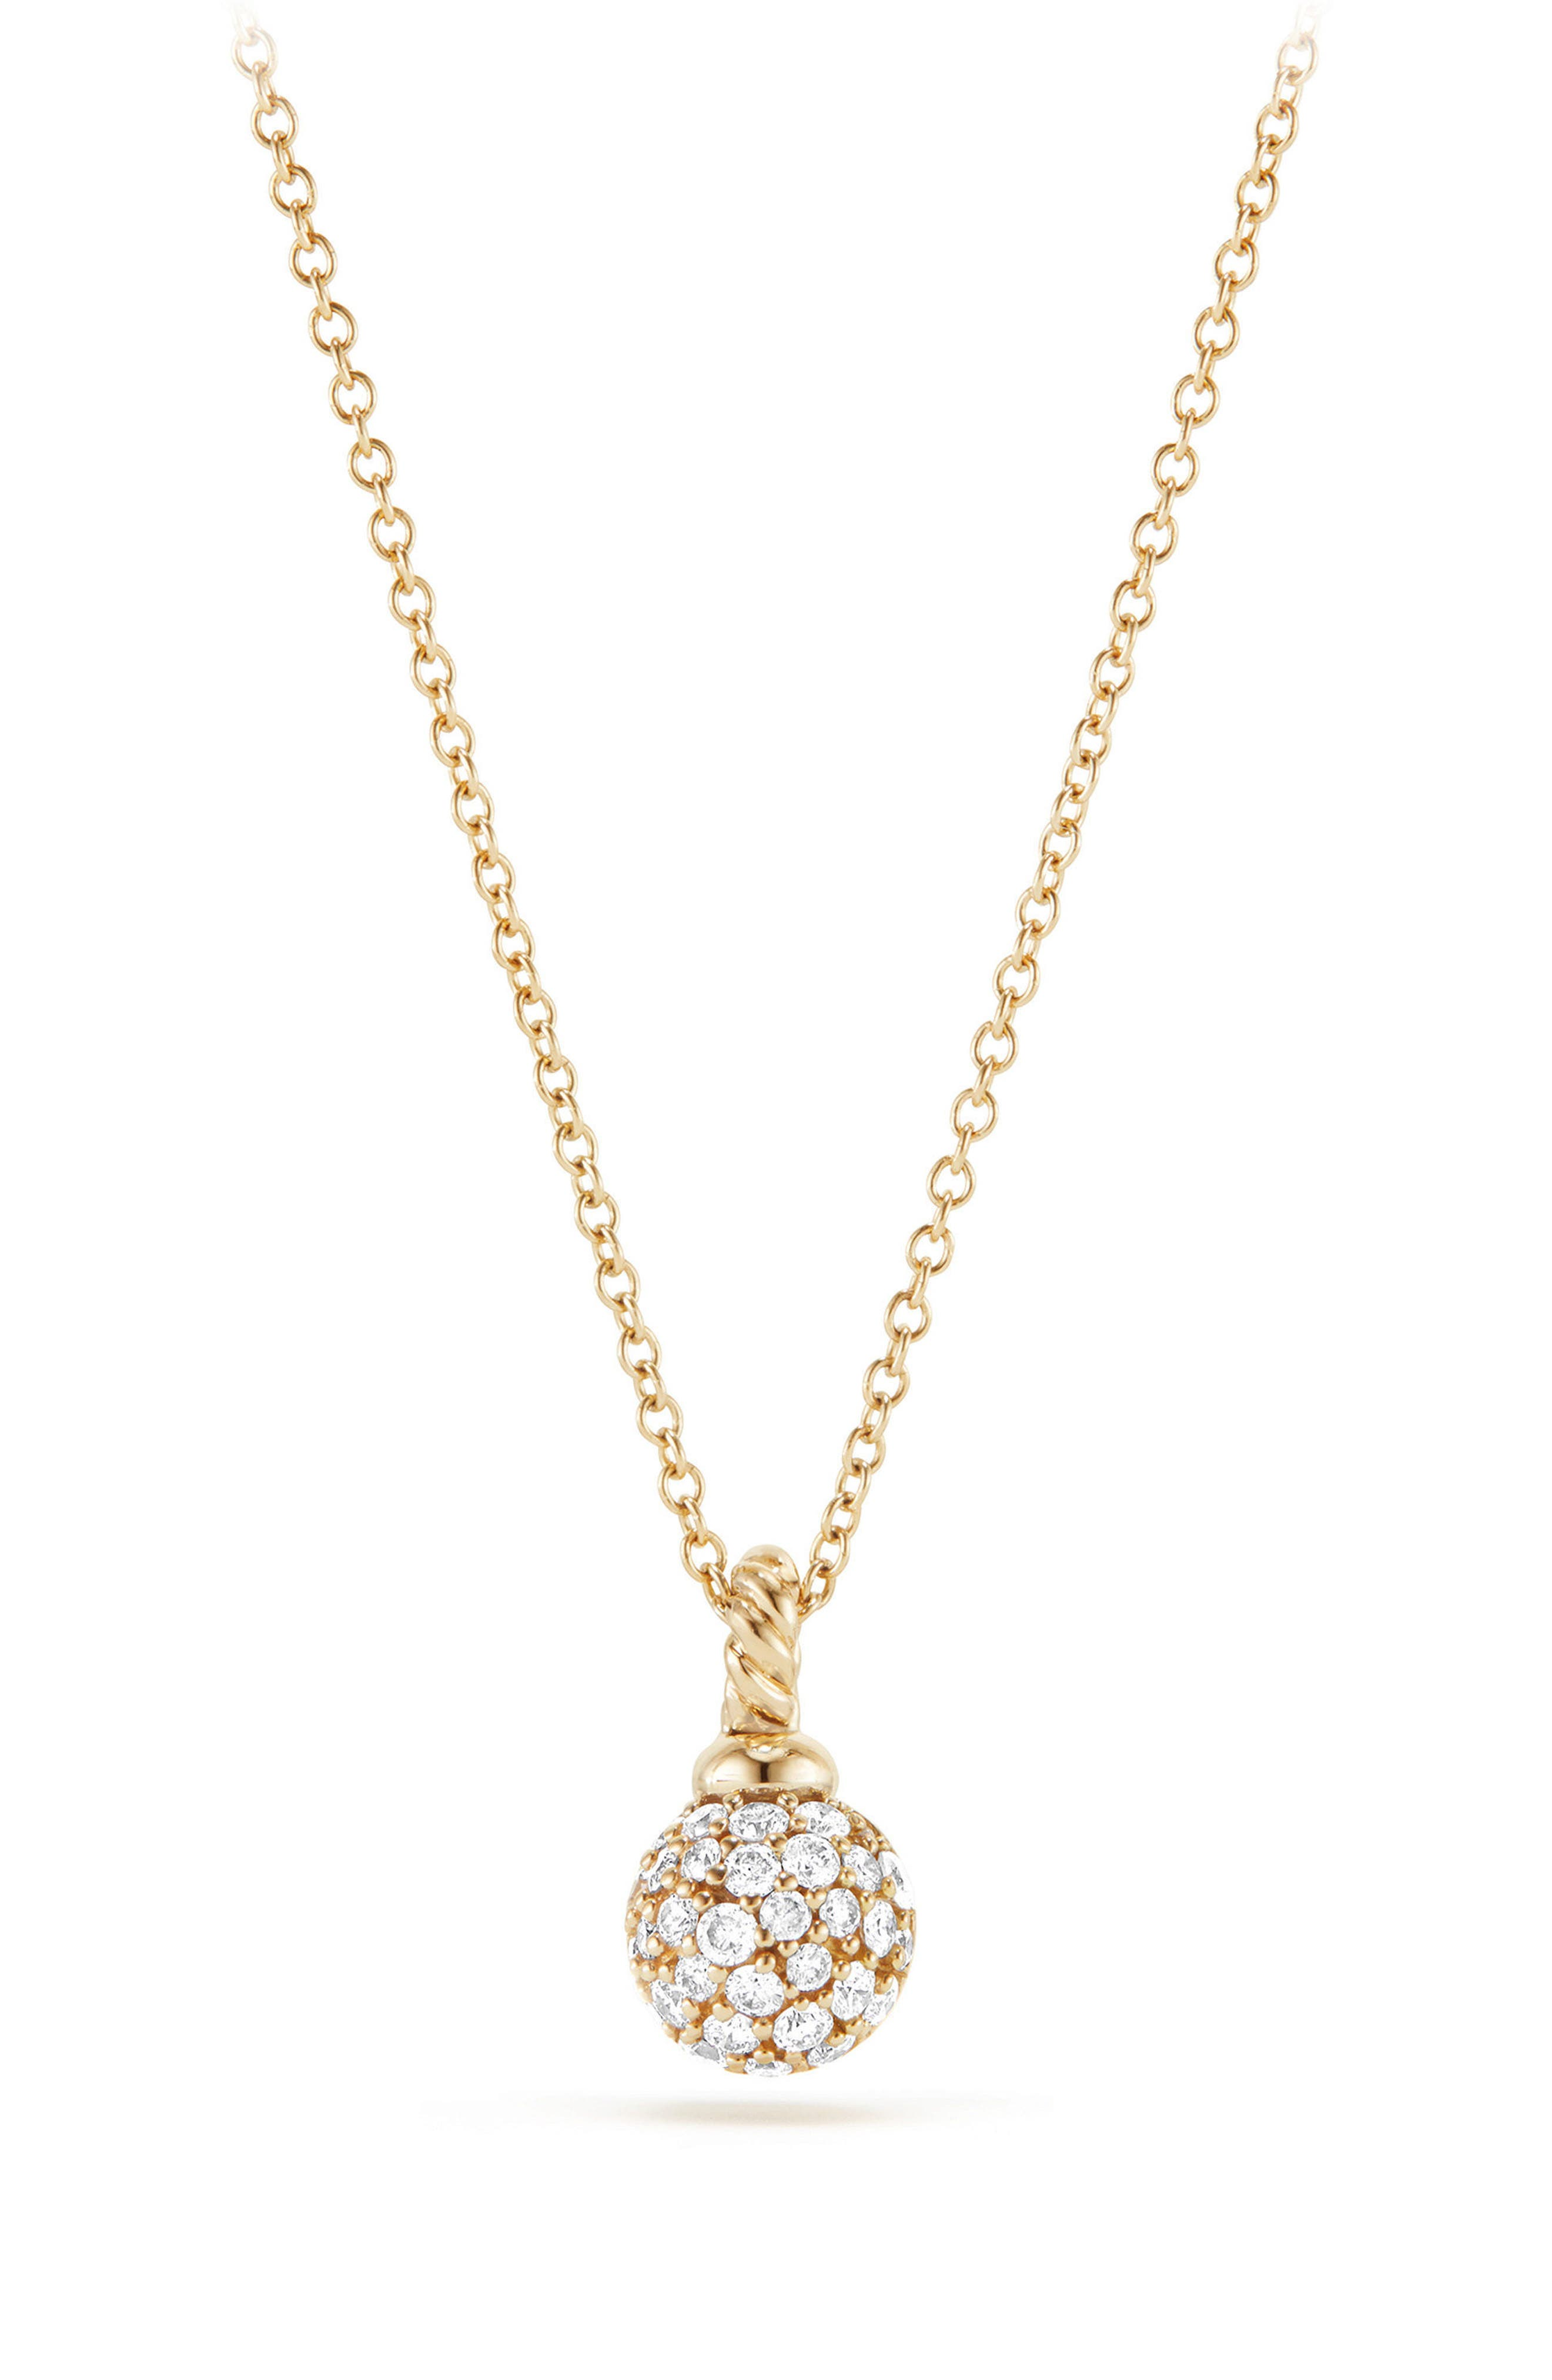 Petite Solari Pavé Necklace with Diamonds in 18K Gold,                         Main,                         color, YELLOW GOLD/ DIAMOND